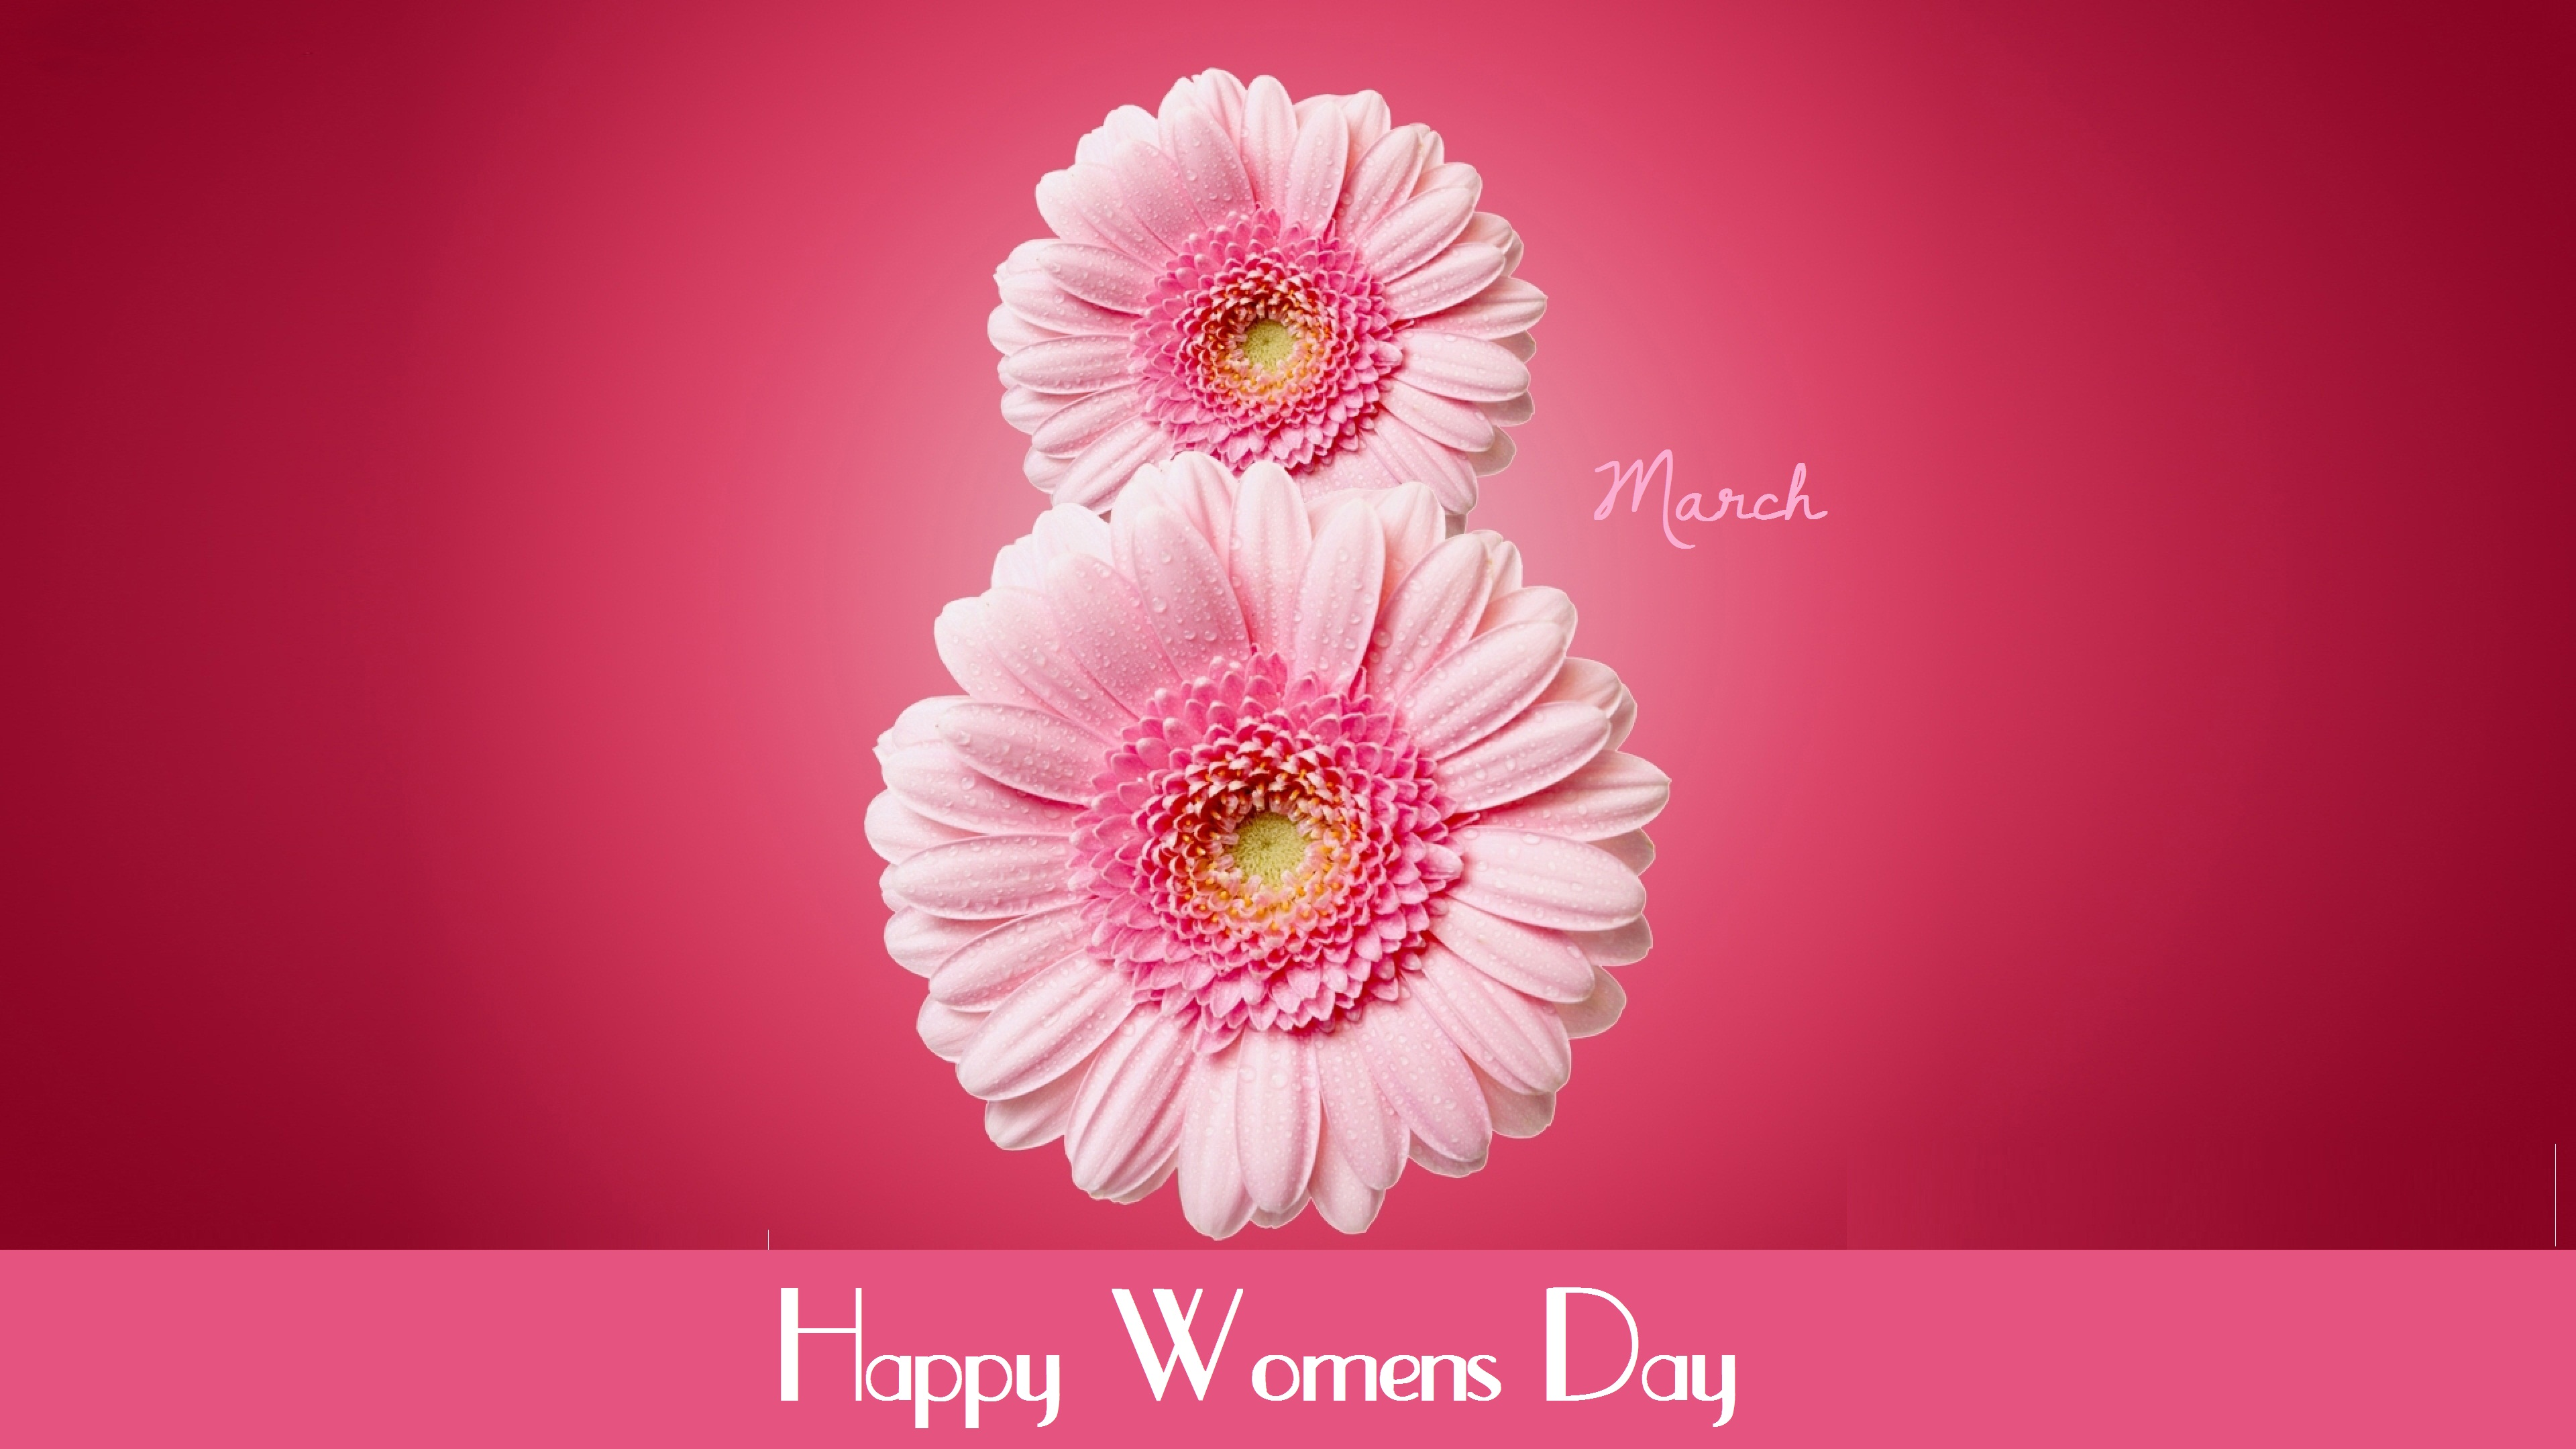 Womens-Day-Images.jpg